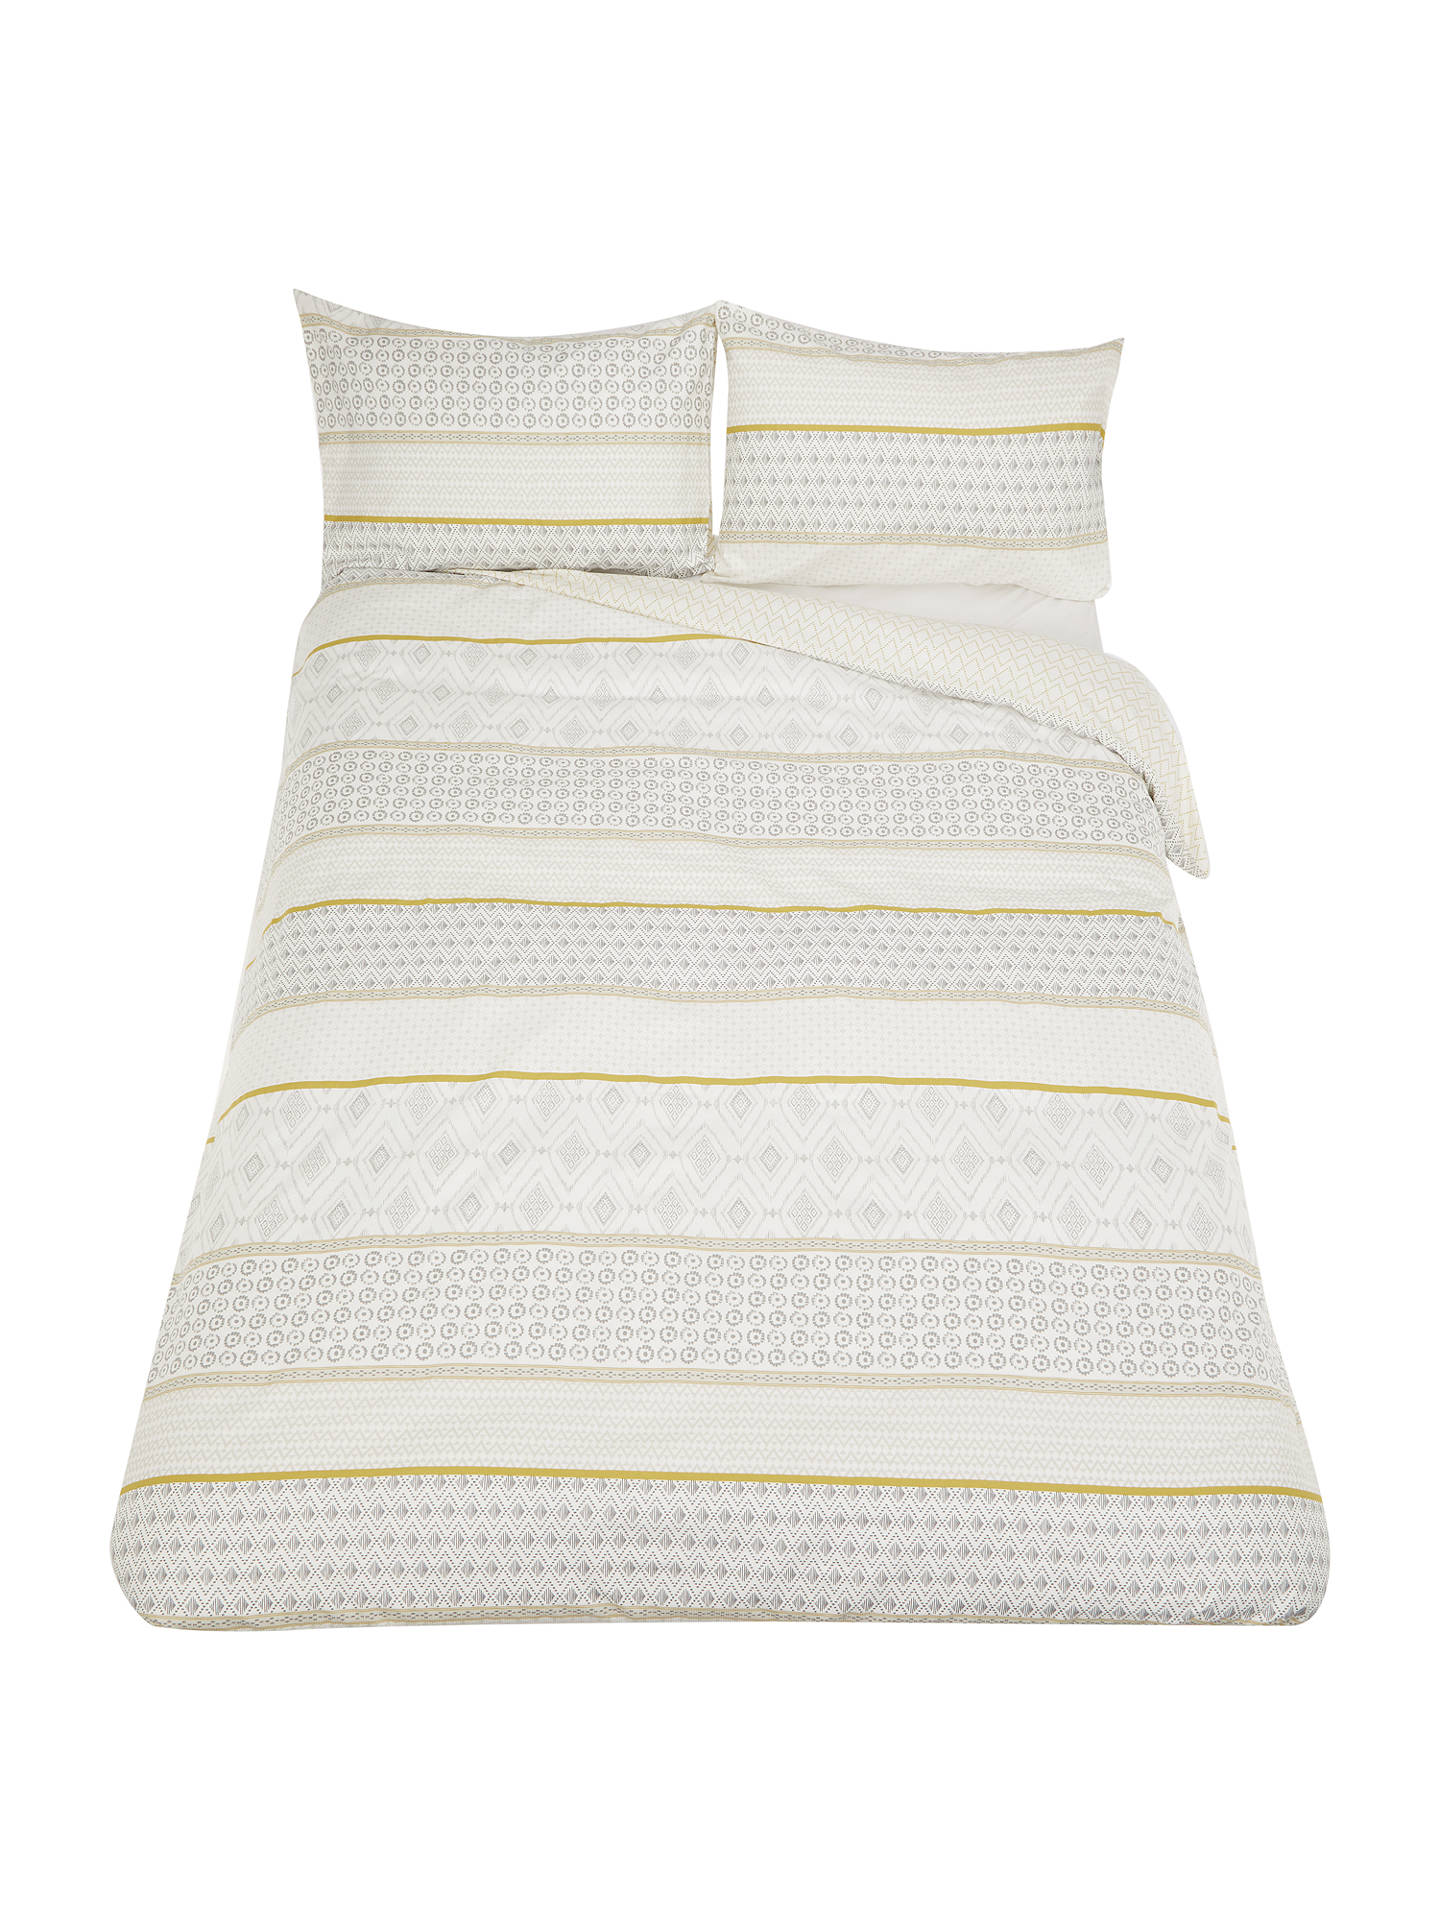 BuyJohn Lewis & Partners Textured and Decorative Fusion Nisha Stripe Duvet Cover Set, Single, Yellow Online at johnlewis.com